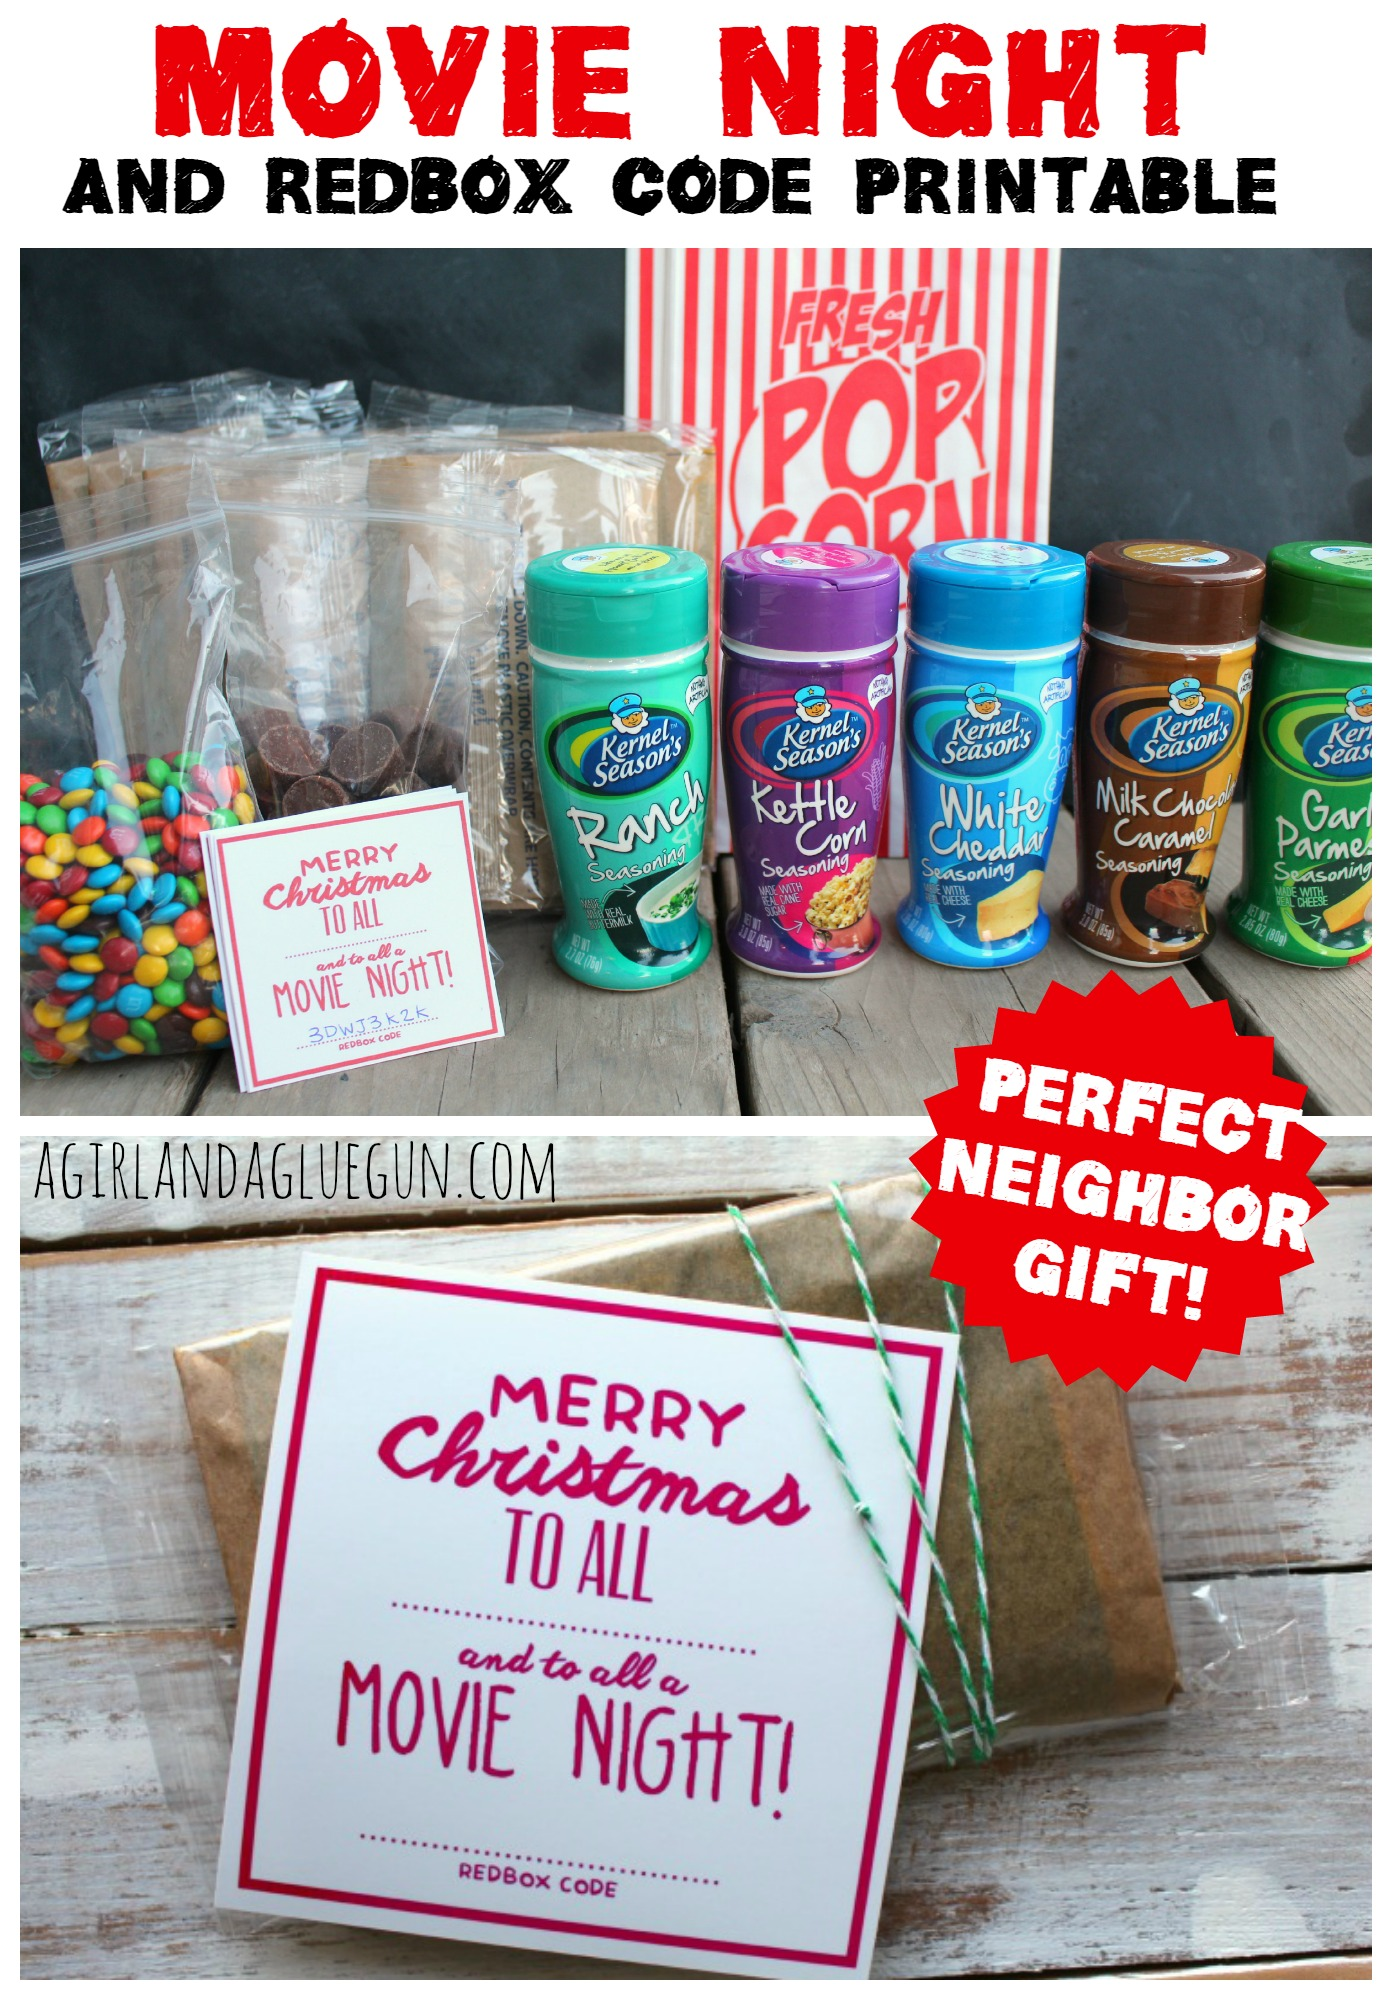 Neighbor Christmas Gift Ideas | Movie Night Gift Idea | A Girl and a Glue Gun